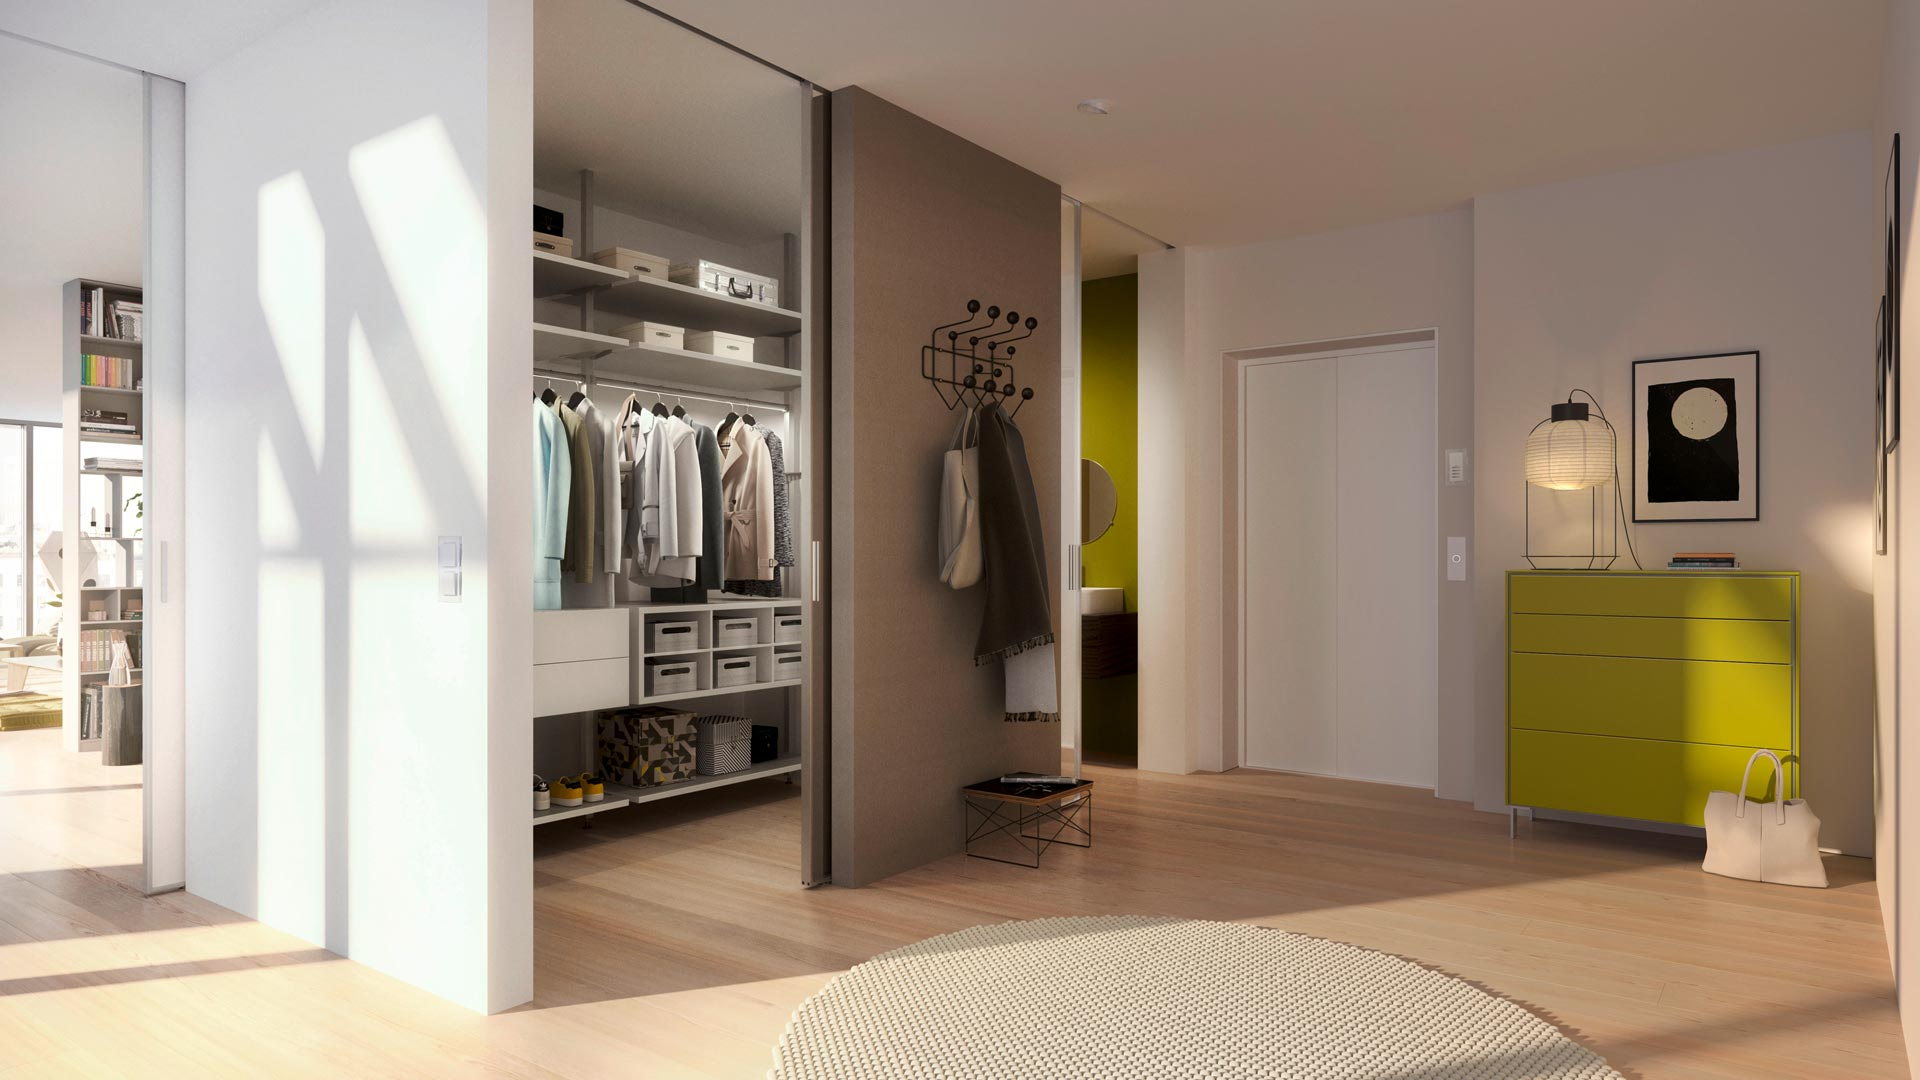 Smart interior choice – a built-in closet with sliding doors